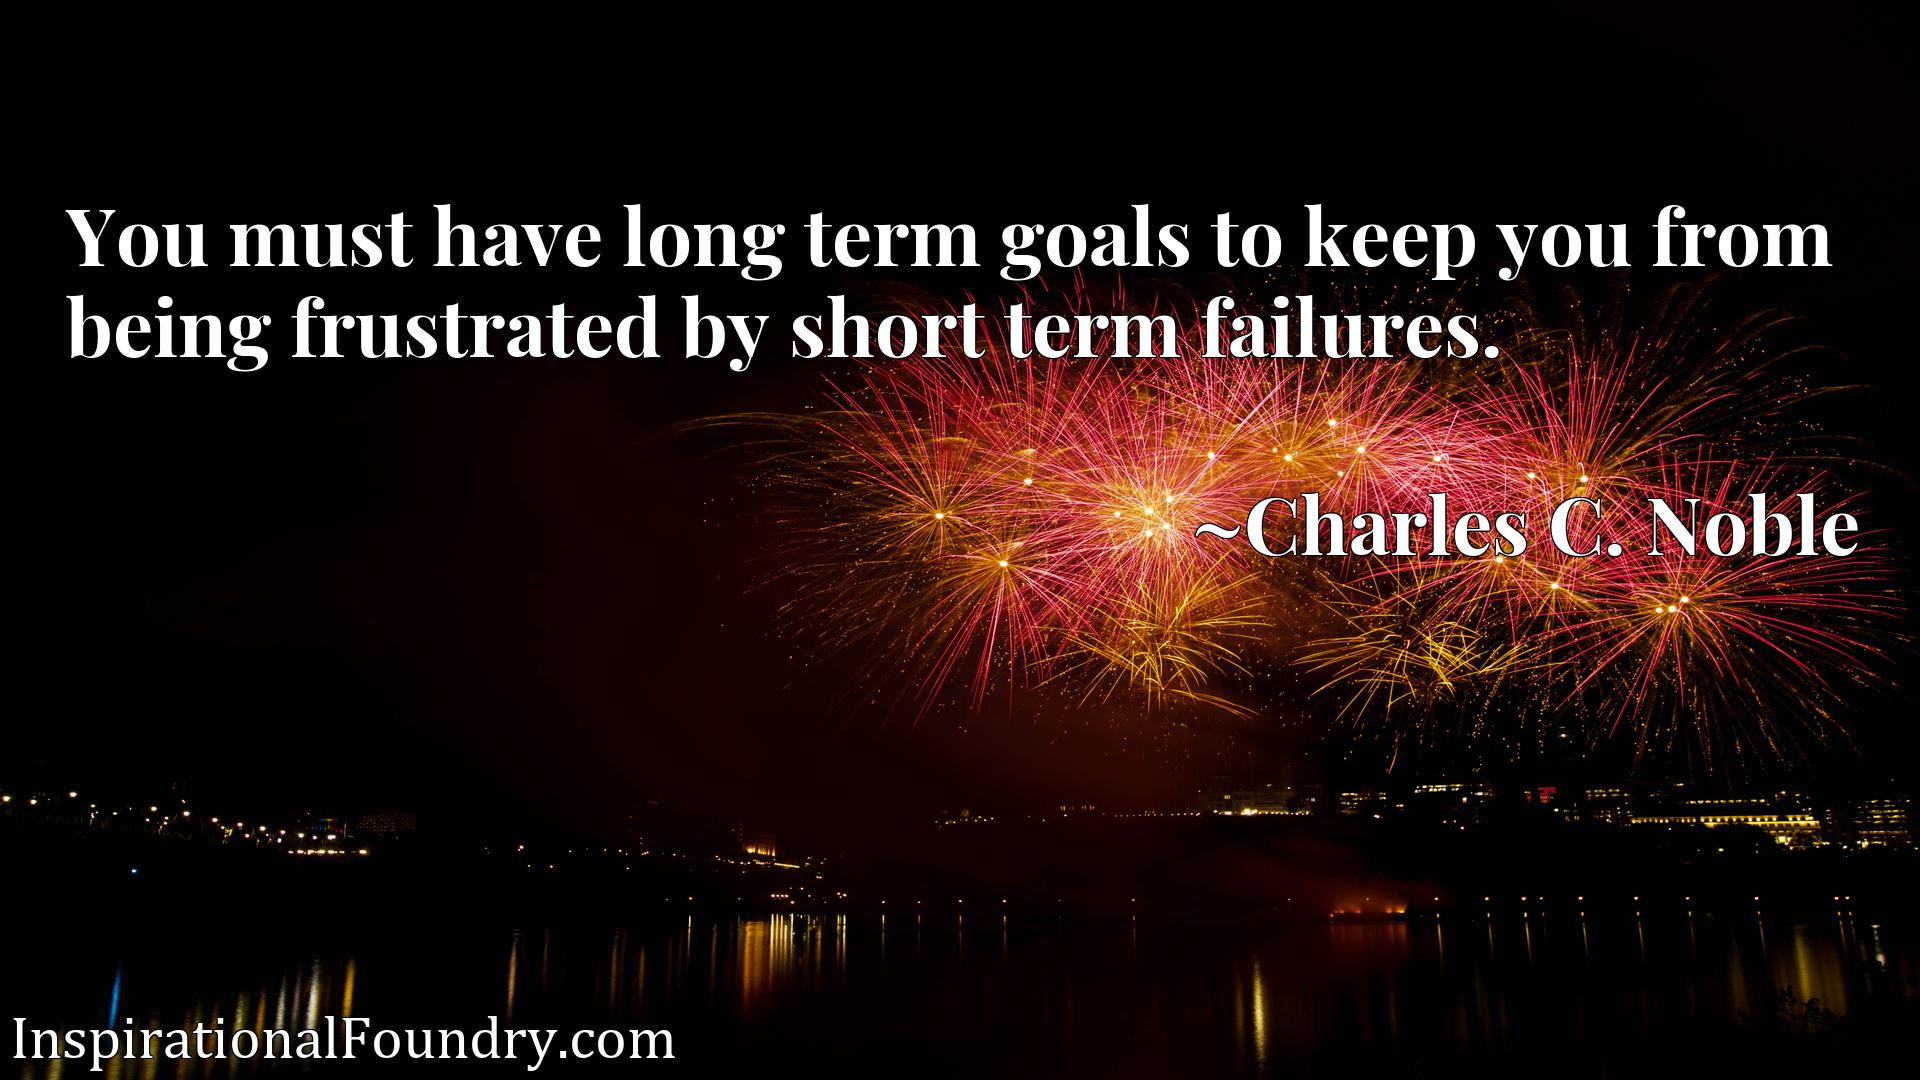 You must have long term goals to keep you from being frustrated by short term failures.